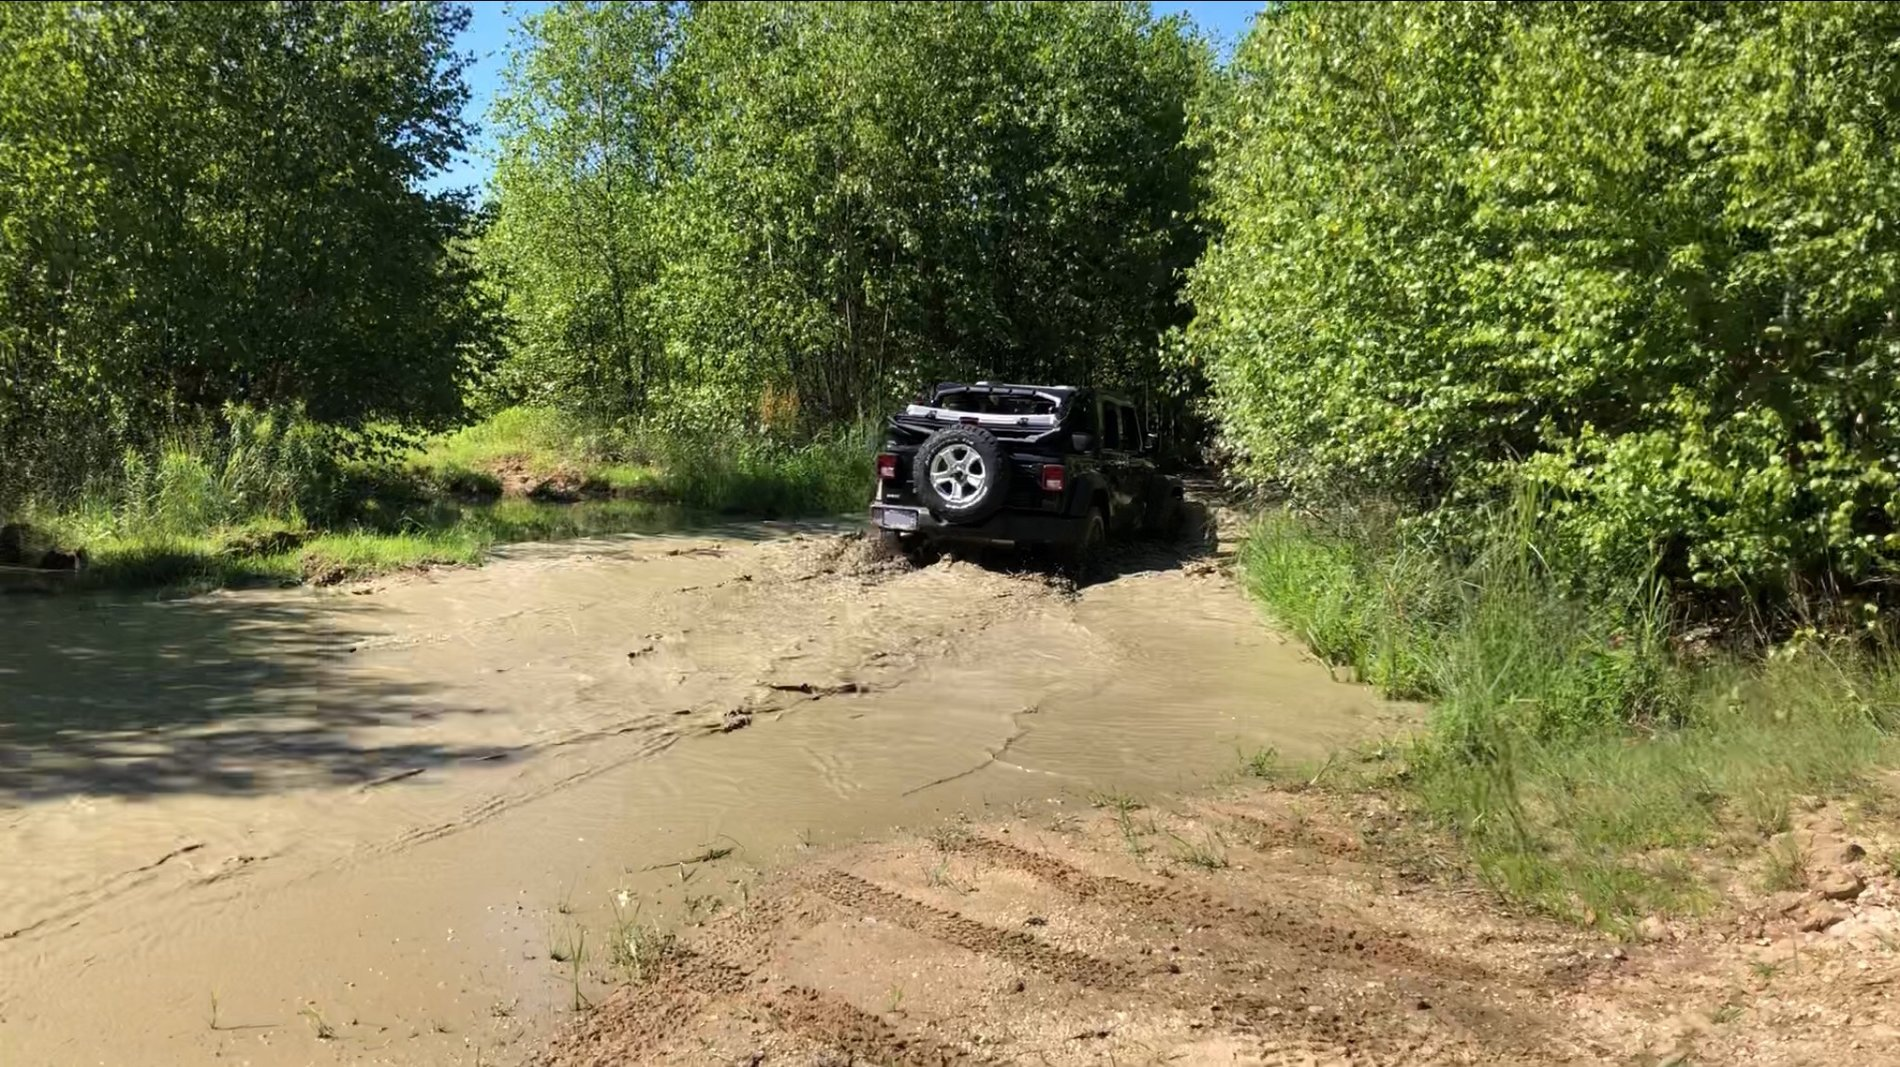 ohio beginner trails page 2 2018 jeep wrangler forums jl jlu rubicon sahara sport unlimited jlwranglerforums com ohio beginner trails page 2 2018